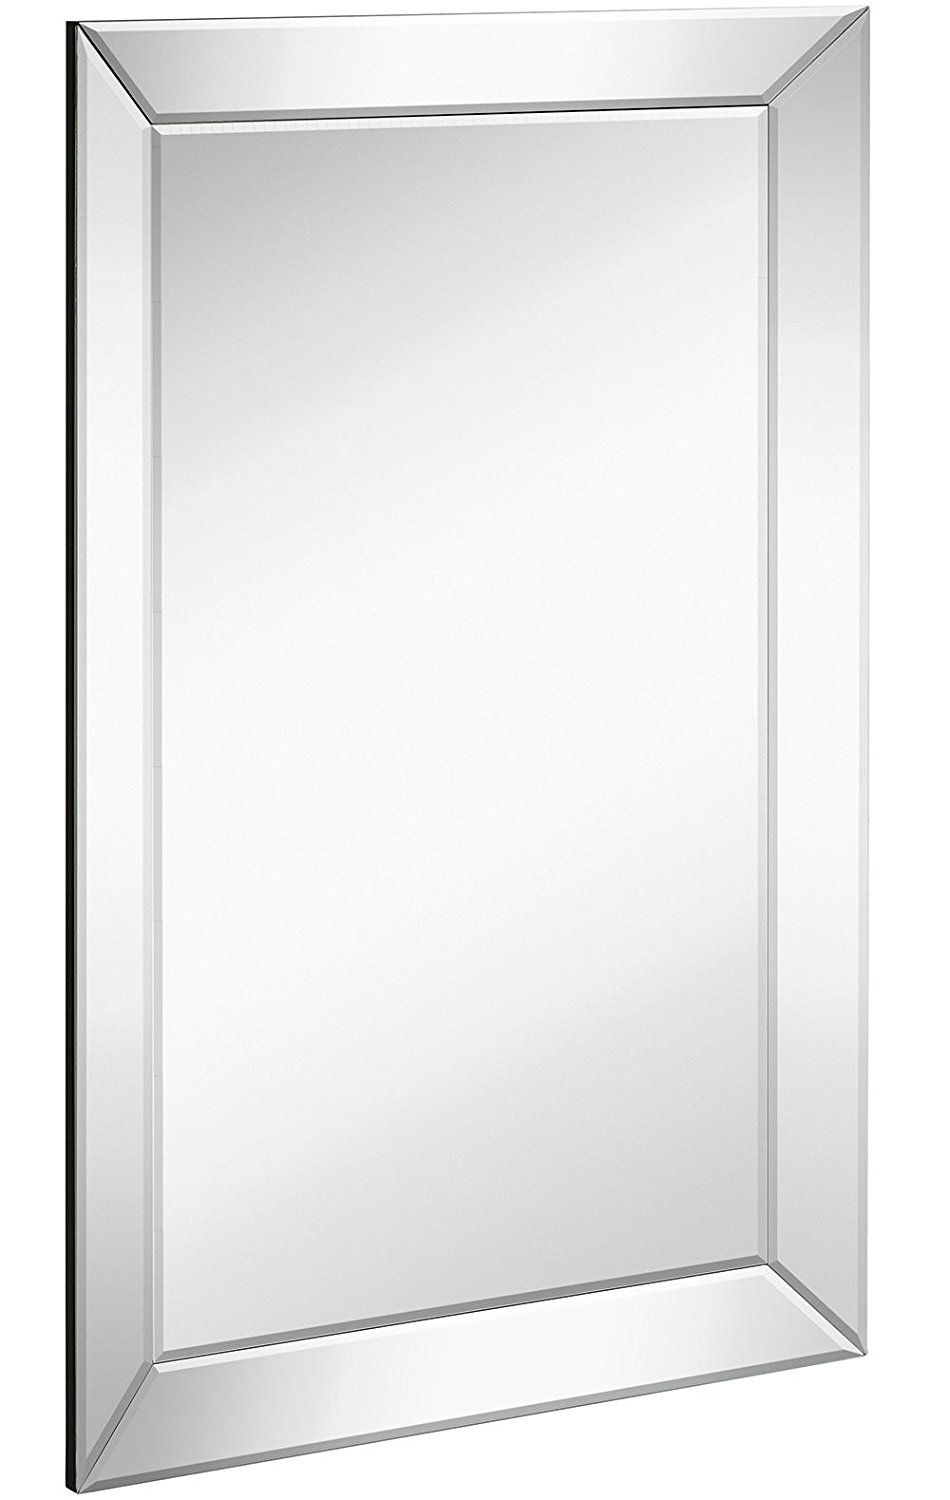 Large Framed Wall Mirror With Angled Beveled Mirror Frame Premium Silver Backed Glass Panel Vani Beveled Mirror Bathroom Frames On Wall Mirror Wall